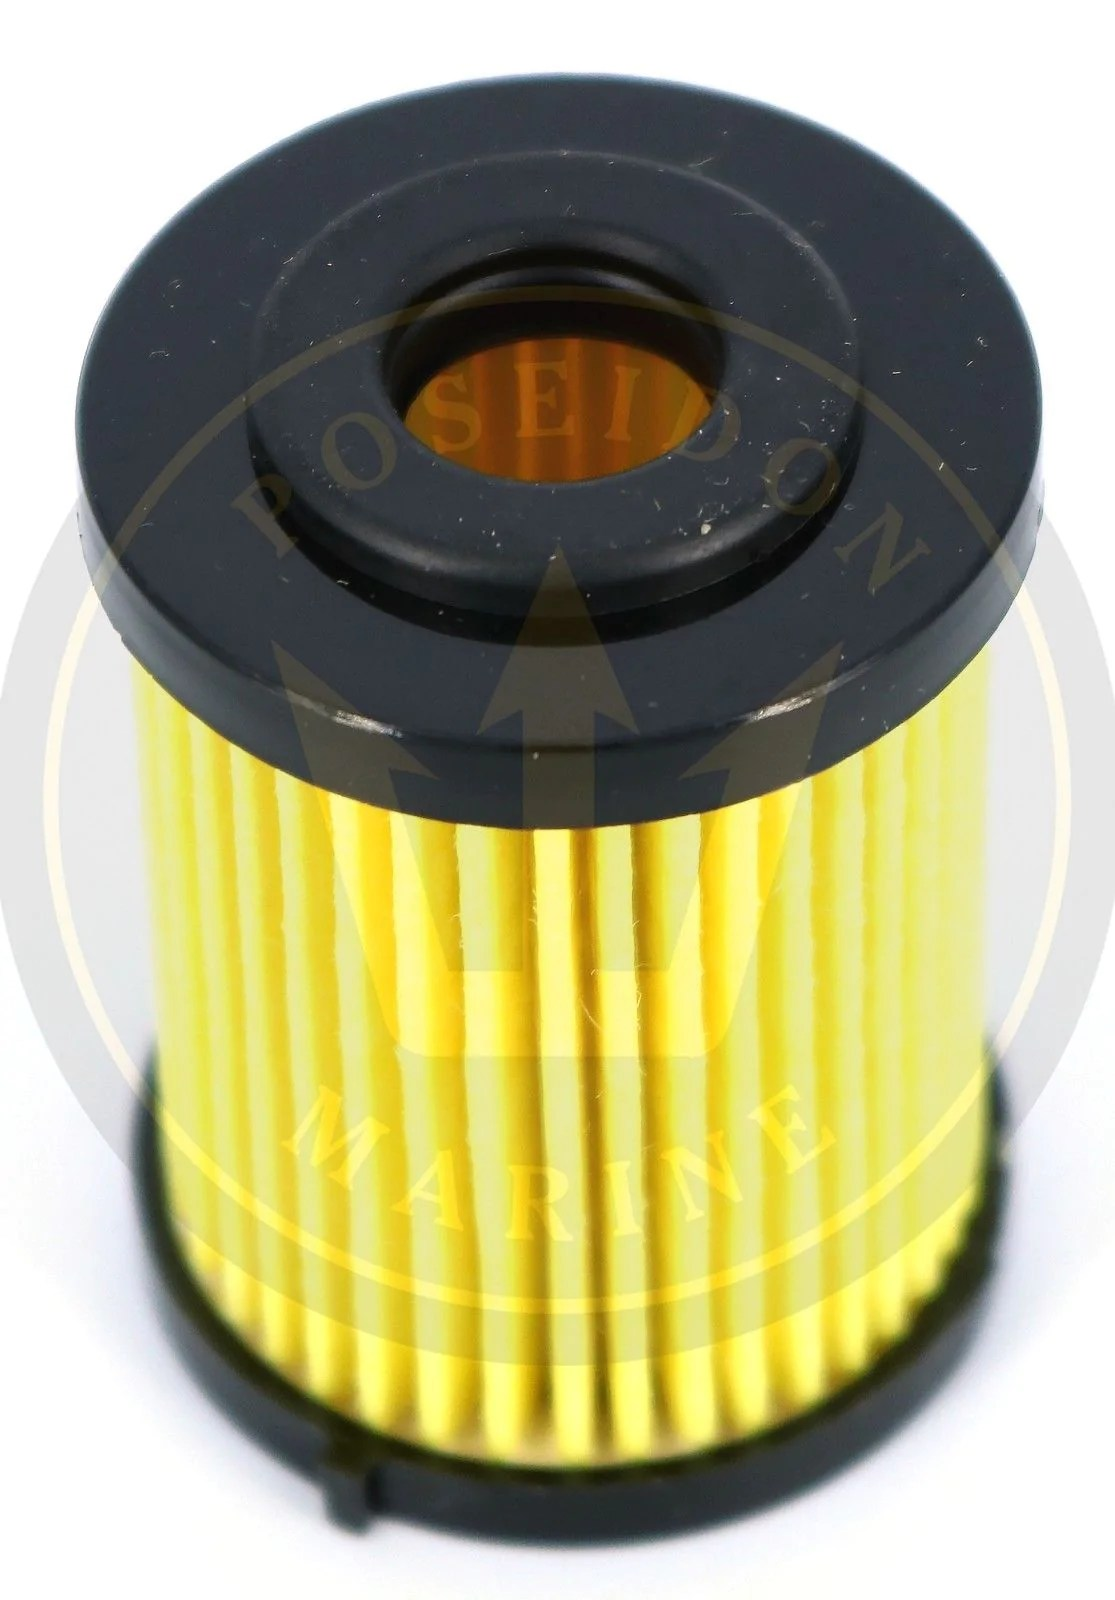 hight resolution of  fuel filter element for yamaha 6p3 ws24a 00 150 200 225 250 300hp outboard